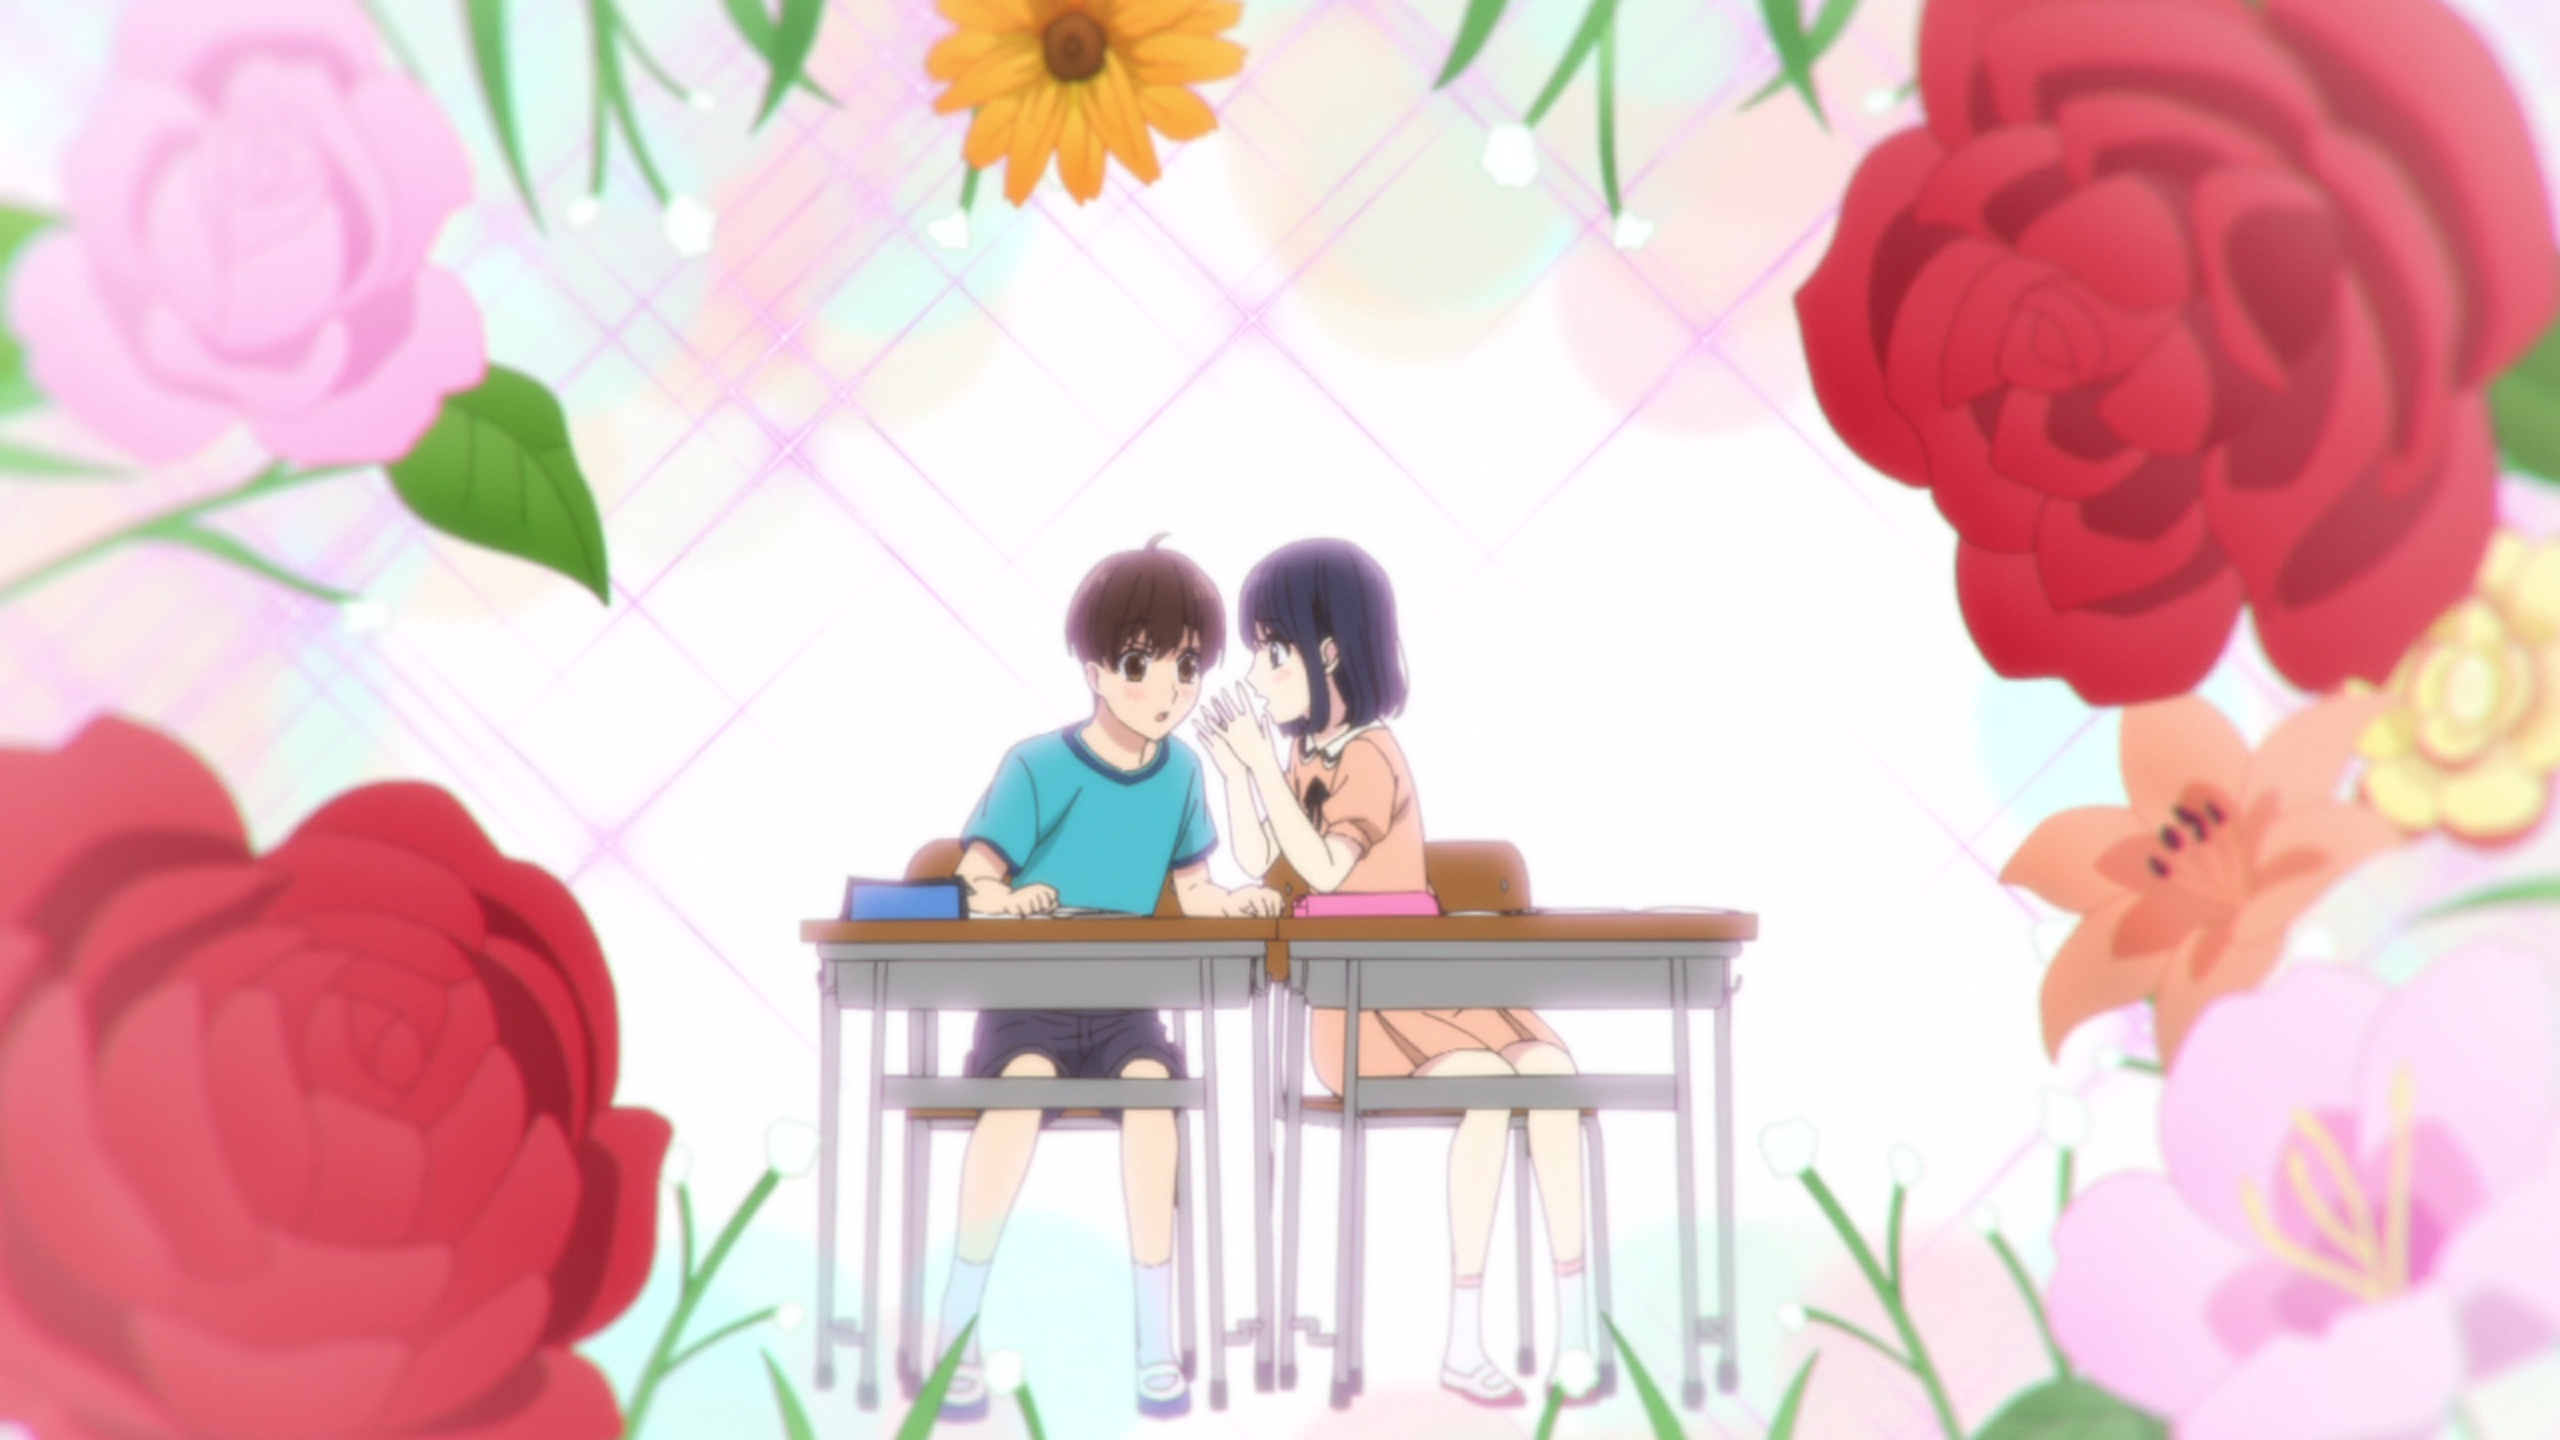 A girl and boy sit next to each other at school desks, the girl leaning over to whisper something to the boy, the whole frame surrounded by typical shojo flowers.